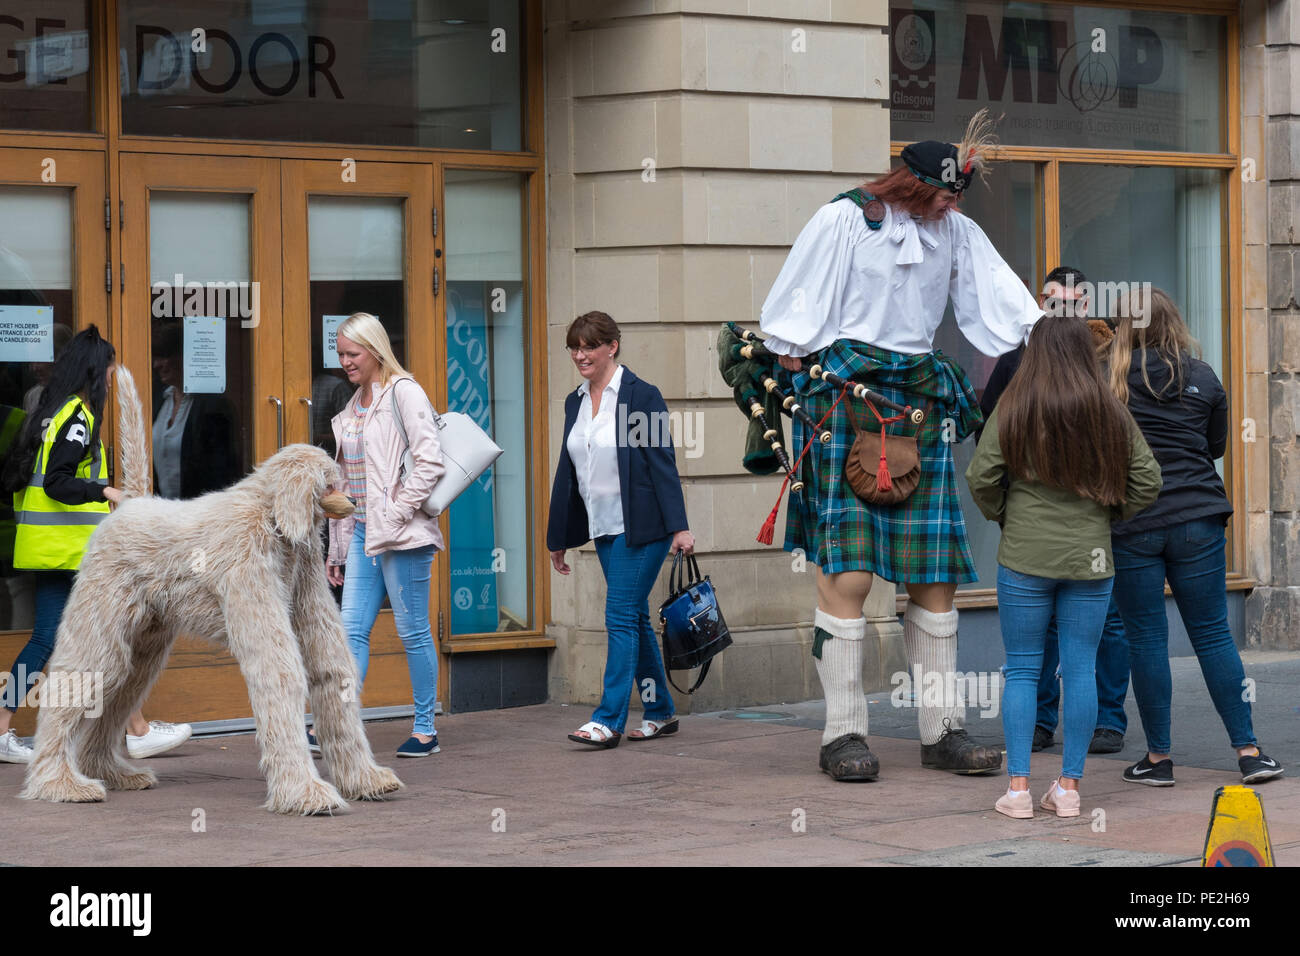 Merchant City Festival 2018, Glasgow, Scotland UK - Stock Image